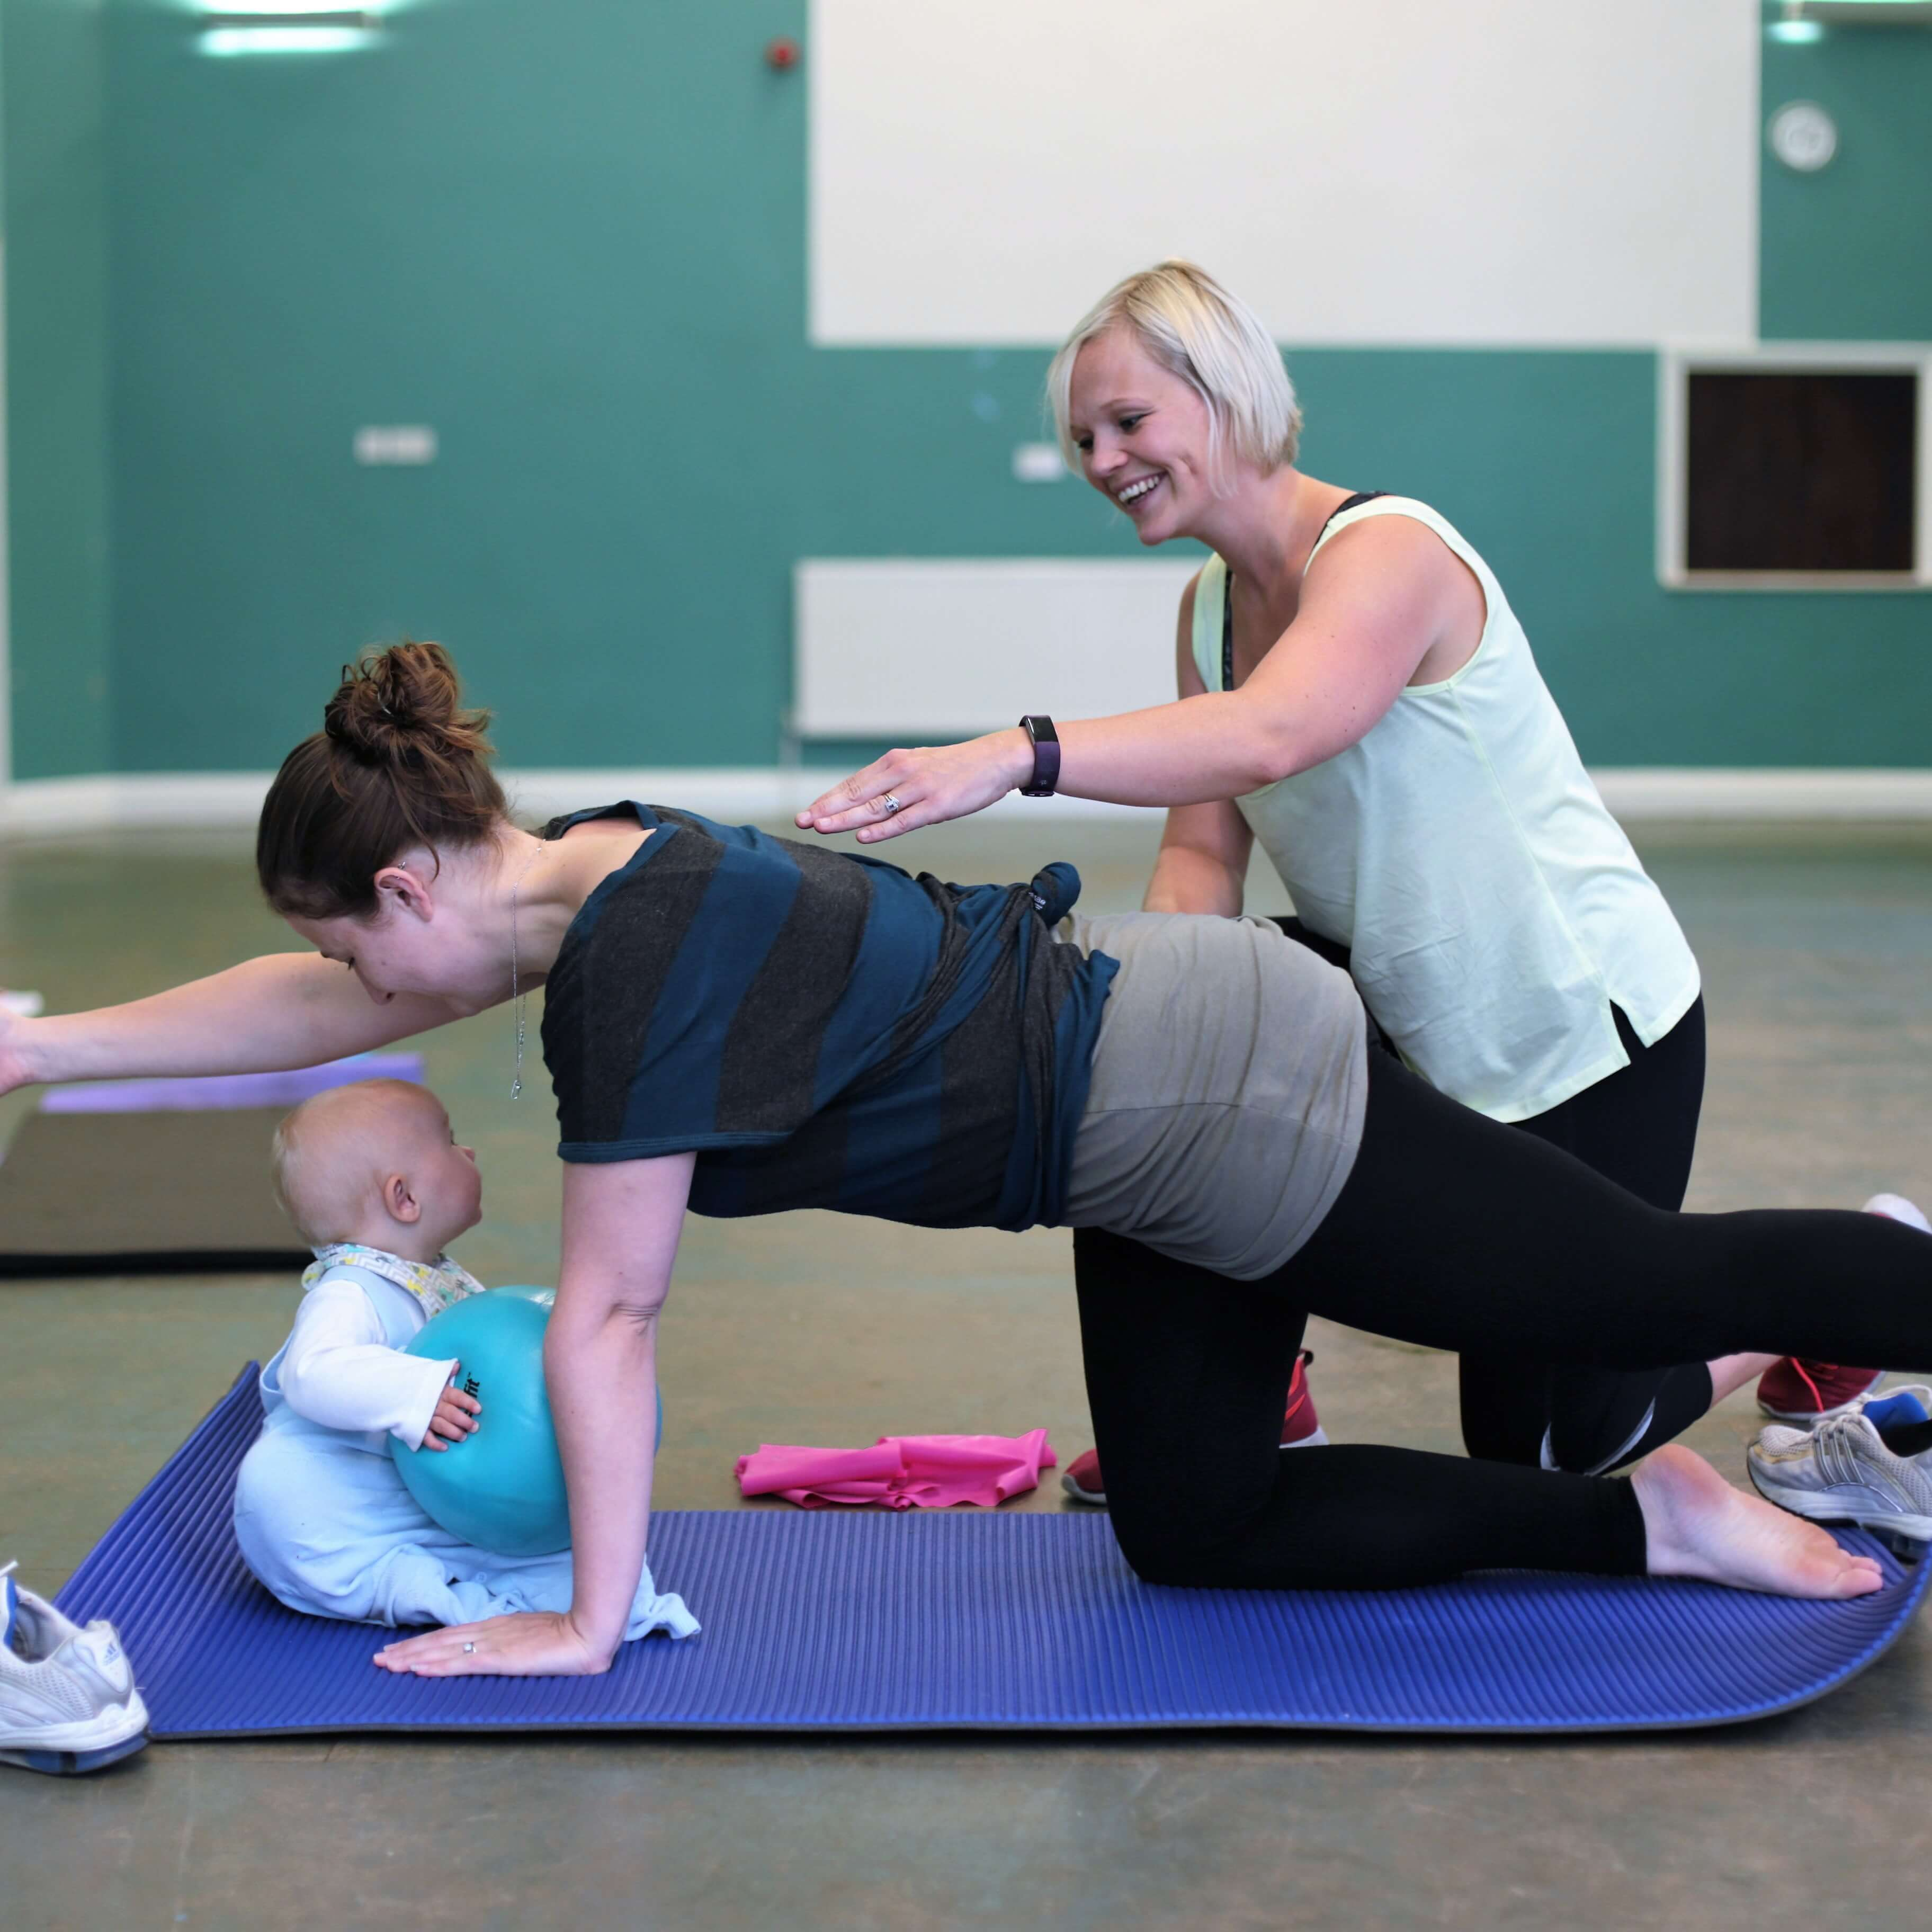 Exercising at a pilates class with baby watching.